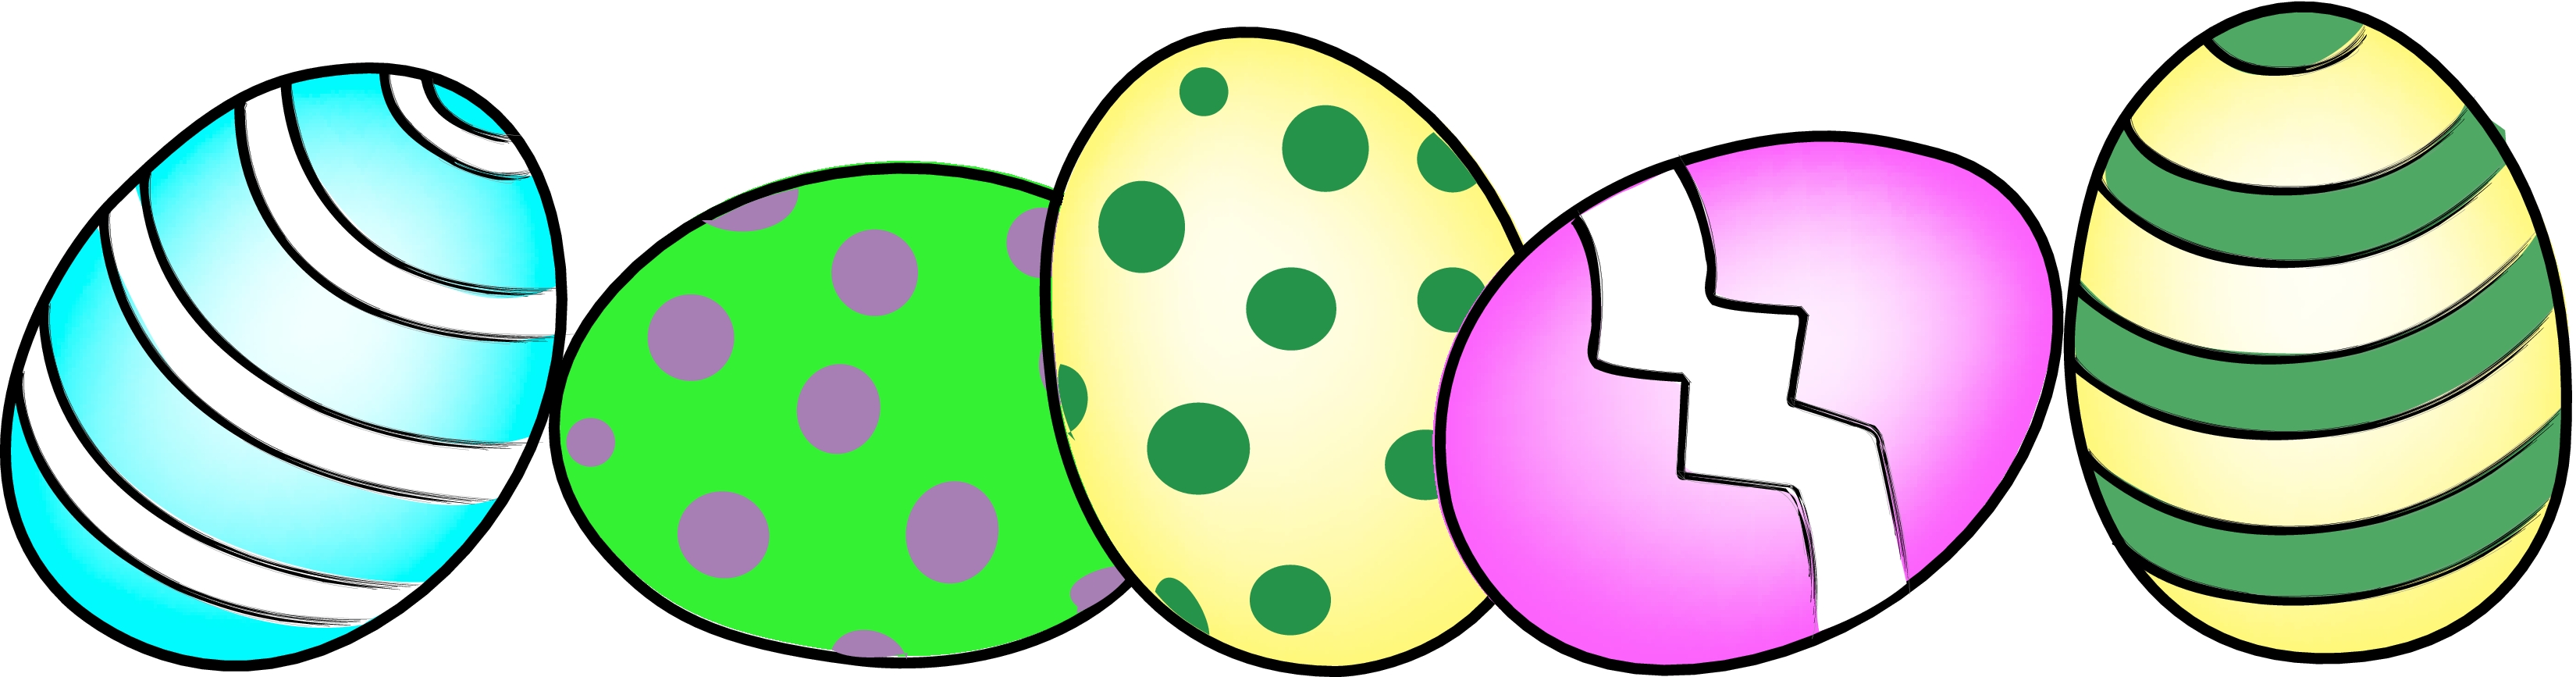 3300x867 Three Easter Eggs In Grass Free Clip Art